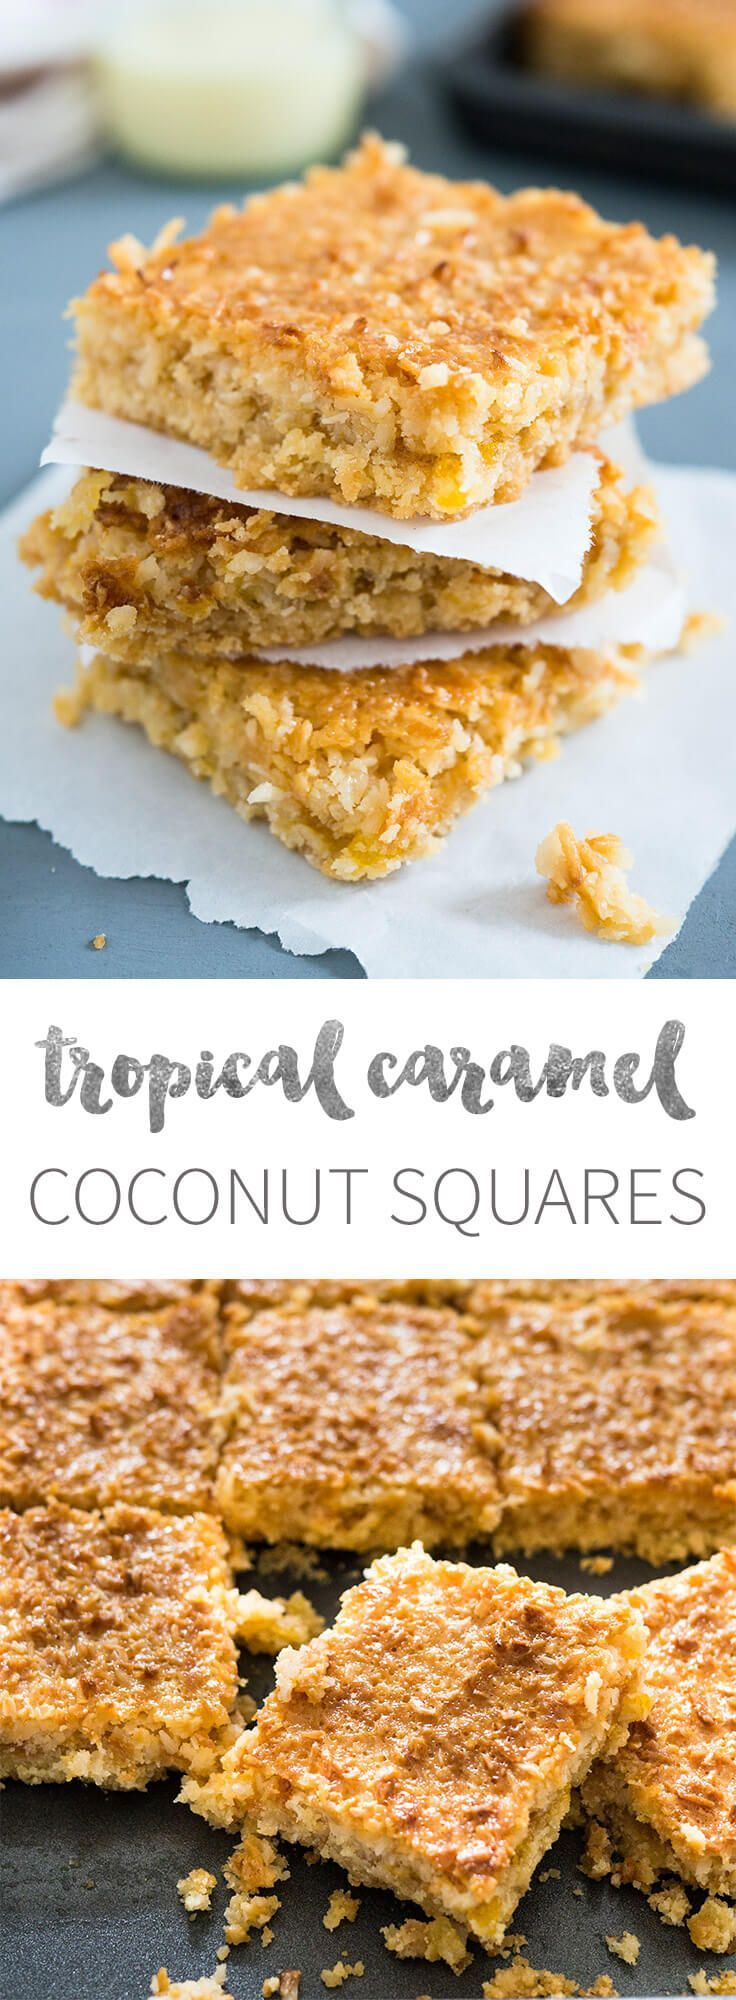 Tropical Coconut Squares taste like candy bars! Three delicious layers topped with sweetened condensed milk make this dessert a tropical little summer treat.